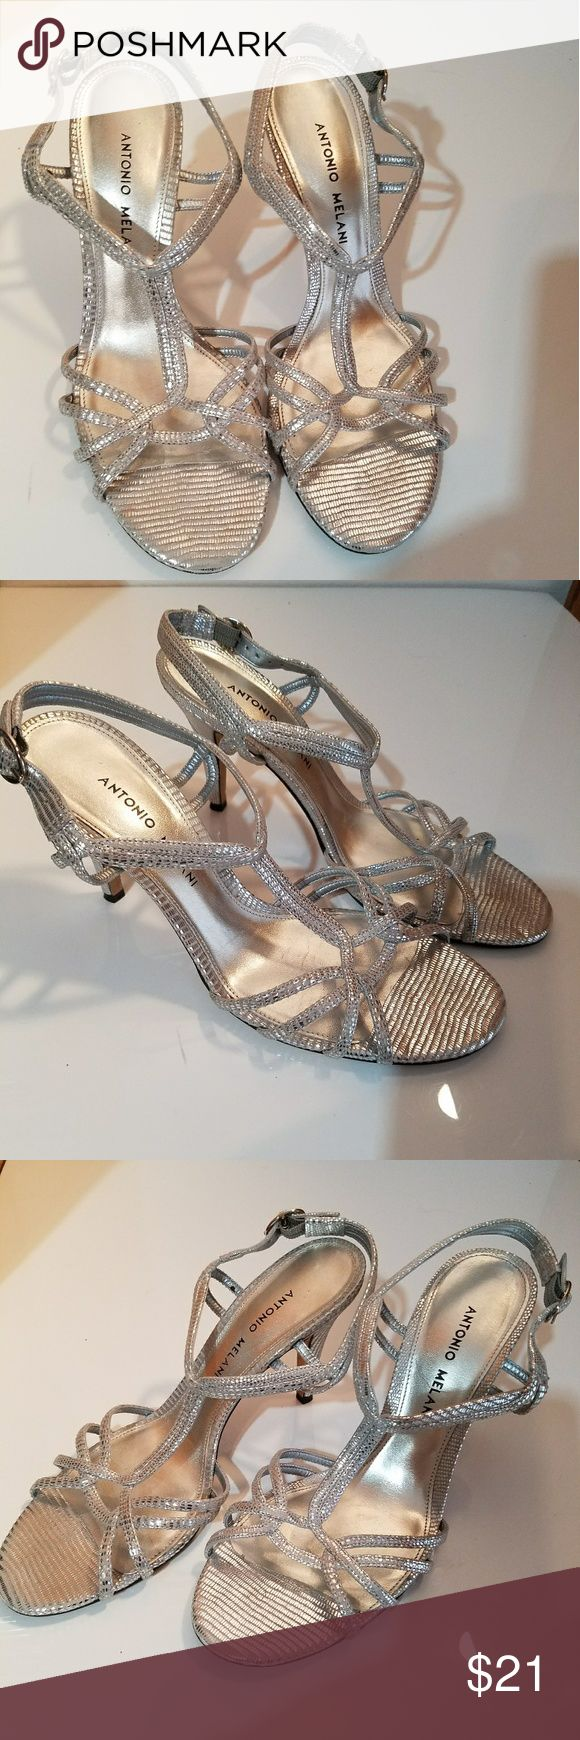 Silver Antonio Melani Sandals Beautiful Silver Antonio Melani Sandals. 4 1/4 inch Heels. Excellent new like Condition. Worn once. No Blemishes. ANTONIO MELANI Shoes Sandals